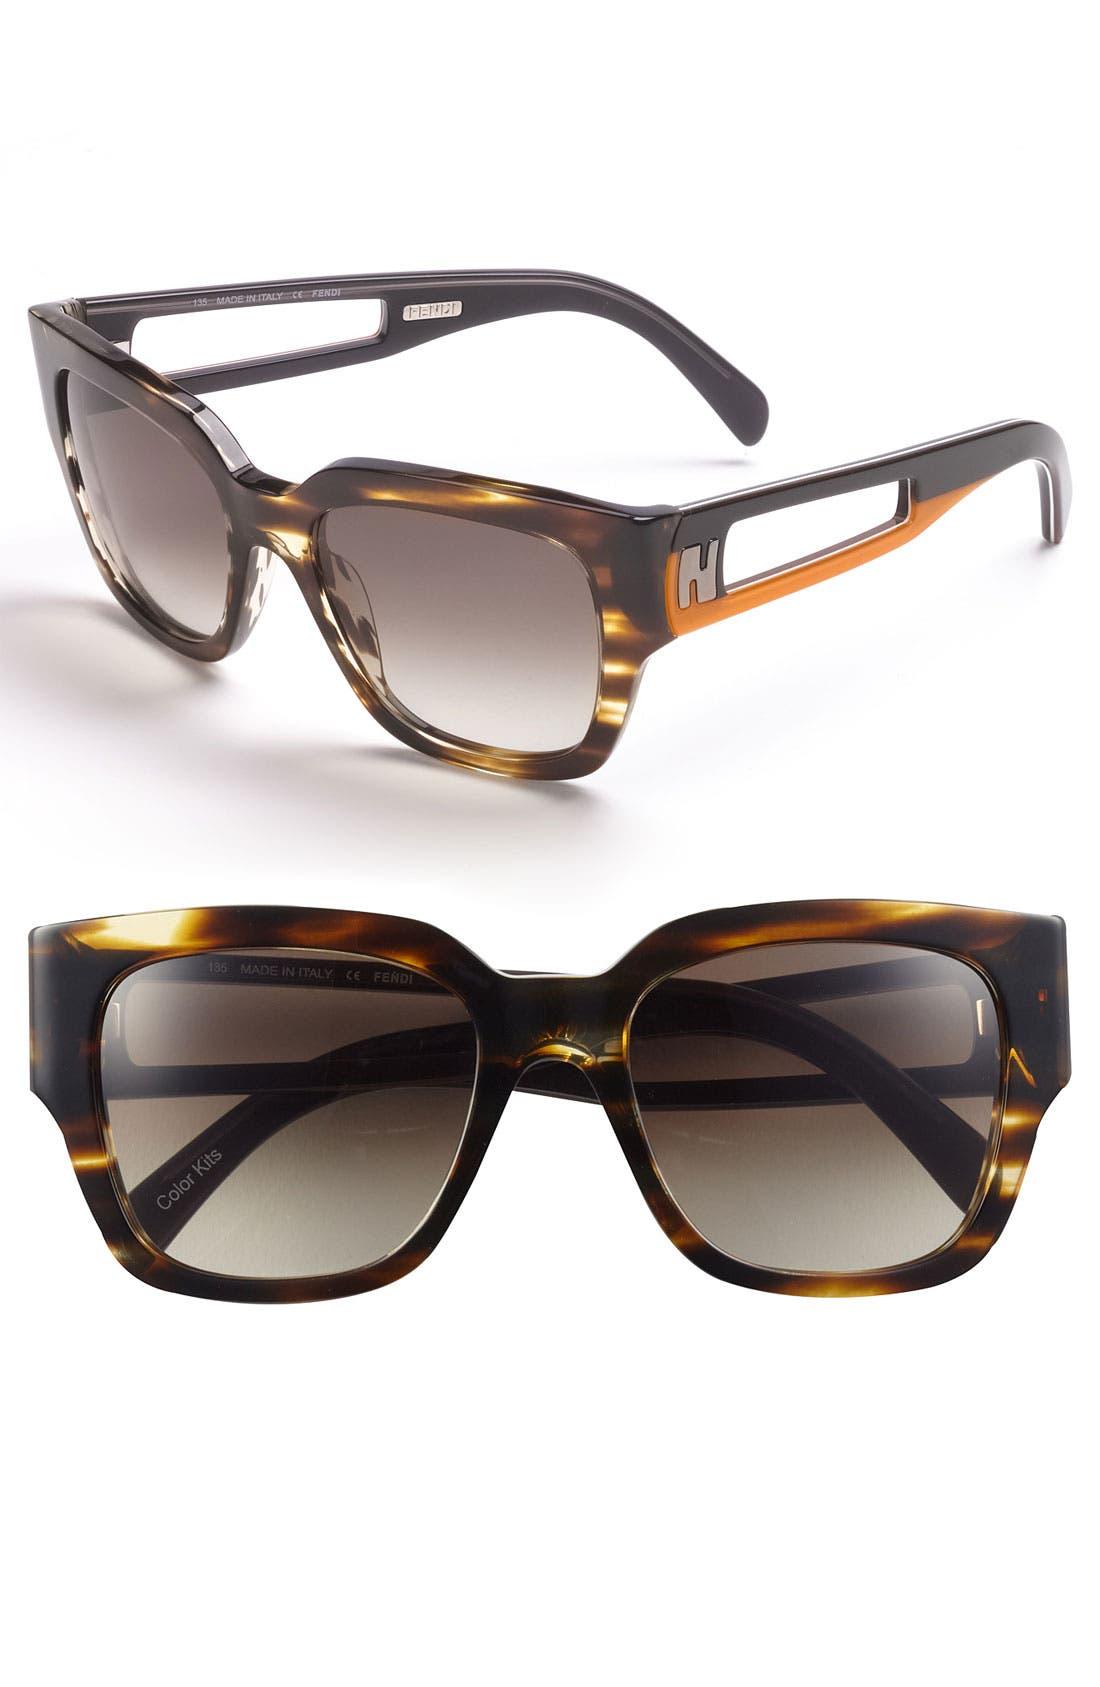 Main Image - Fendi 52mm Retro Sunglasses